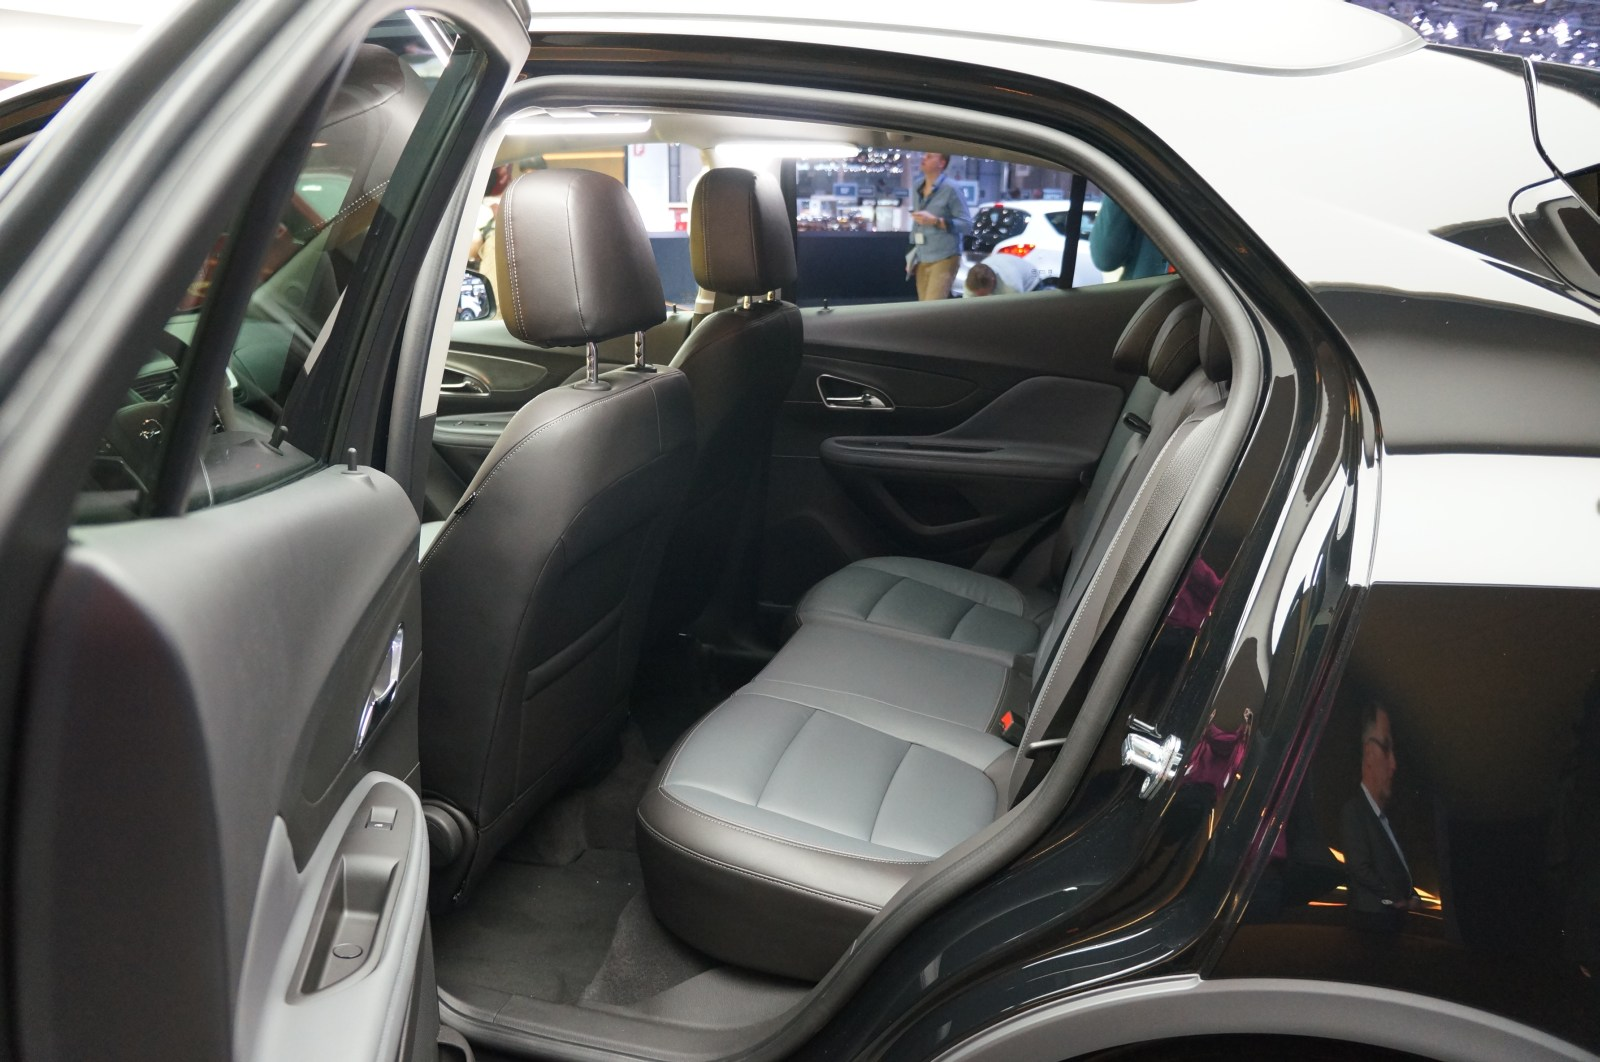 opel mokka interior images galleries with a bite. Black Bedroom Furniture Sets. Home Design Ideas